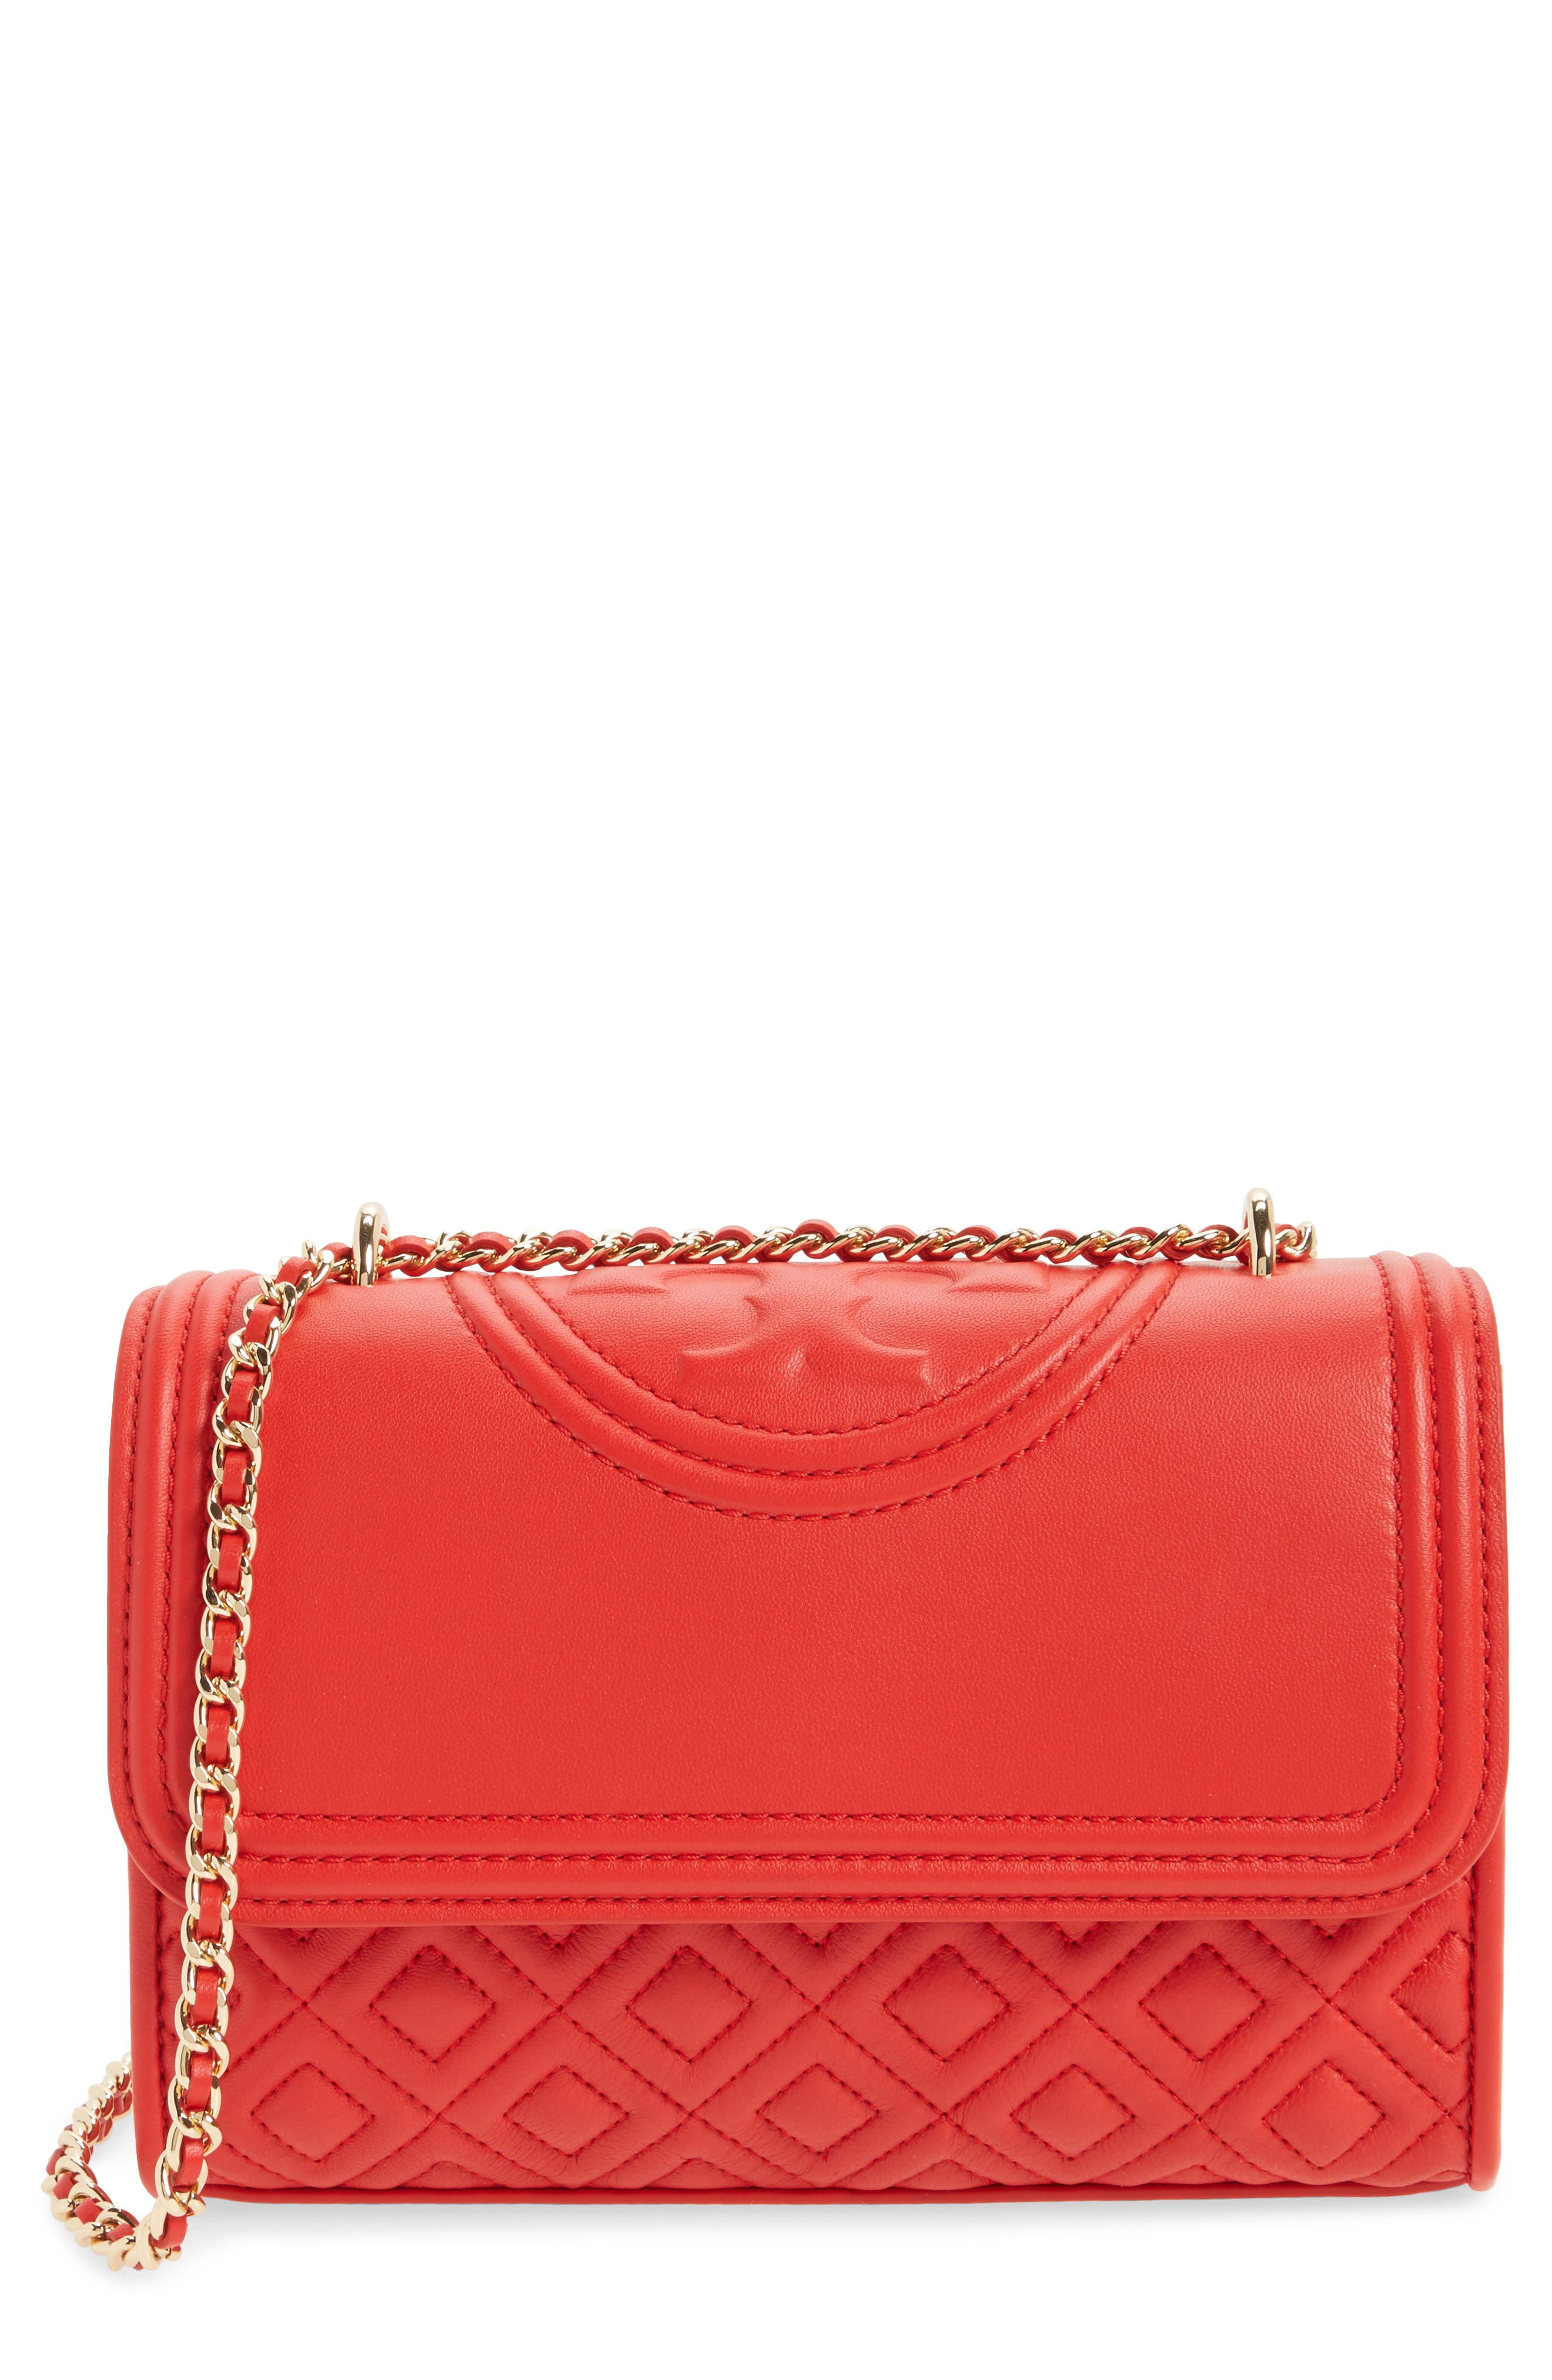 'Small Fleming' Quilted Leather Shoulder Bag,                             Main thumbnail 4, color,